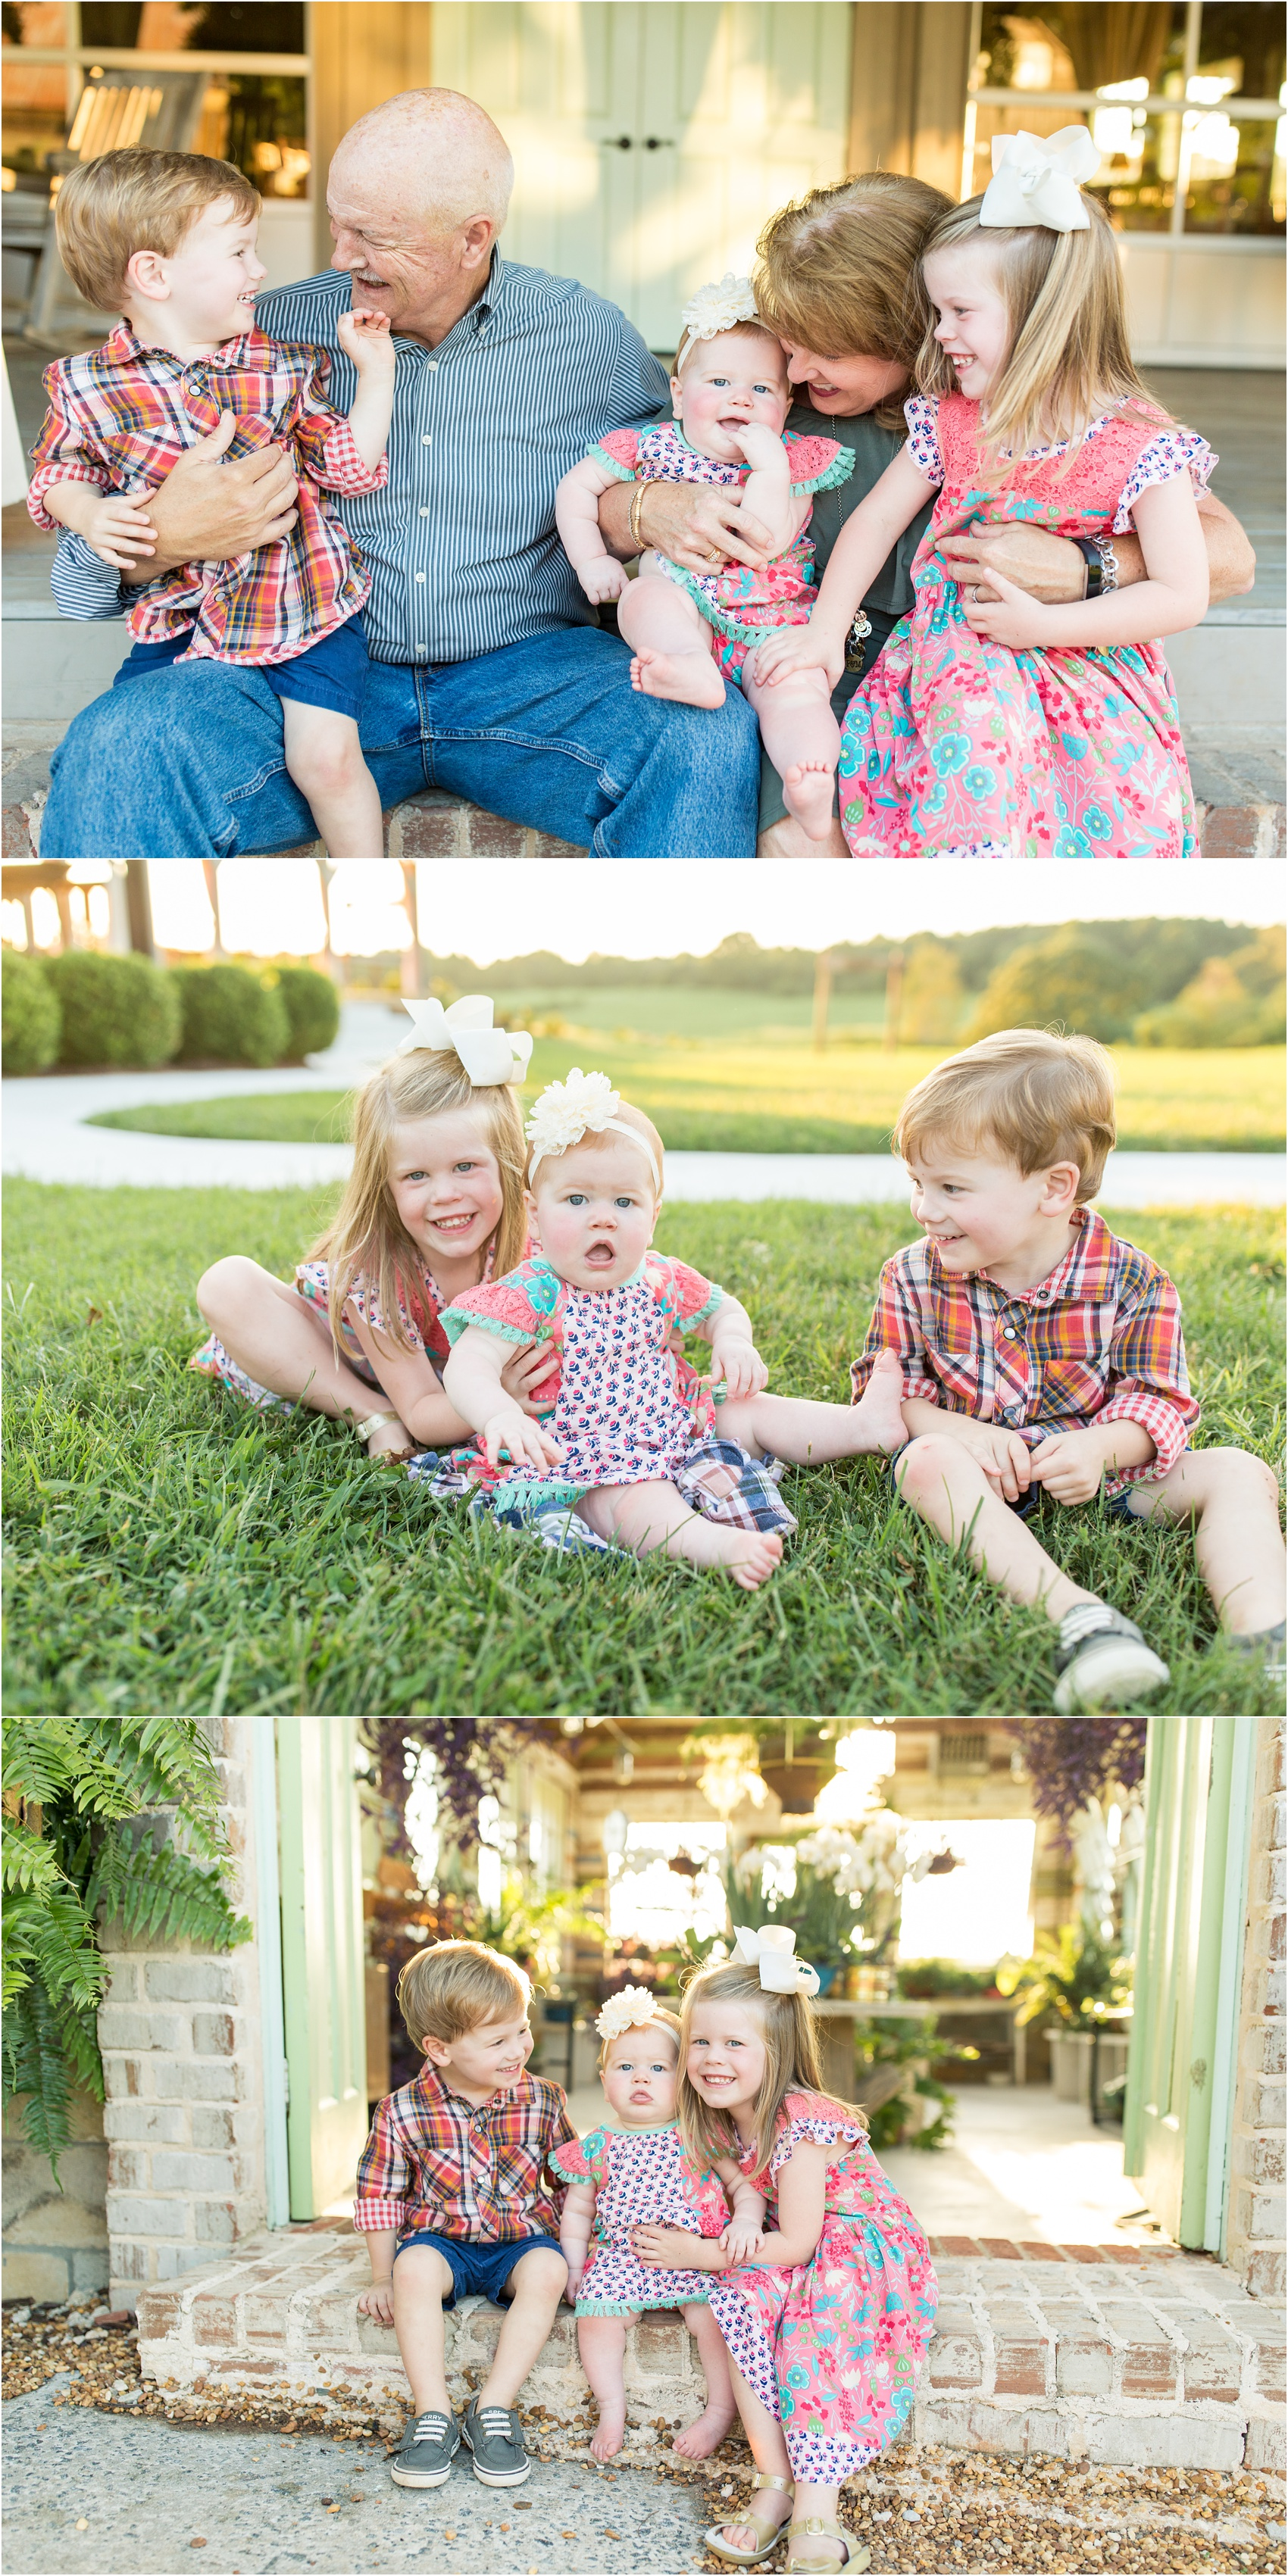 Savannah Eve Photography- Chambers Fam-22.jpg